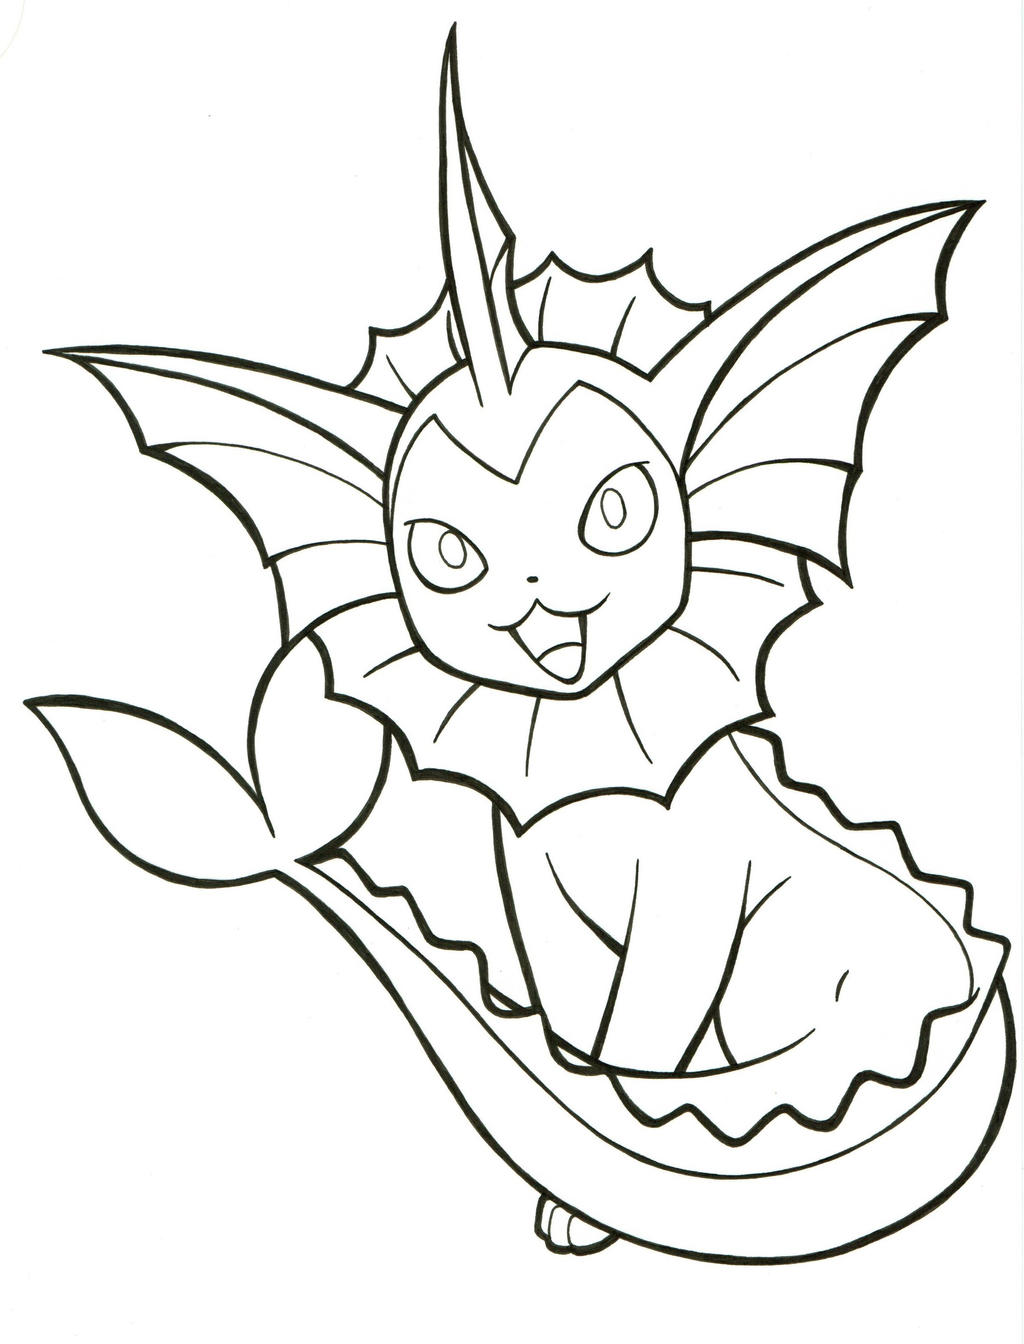 eeveelutions vaporeon coloring pages - photo#15